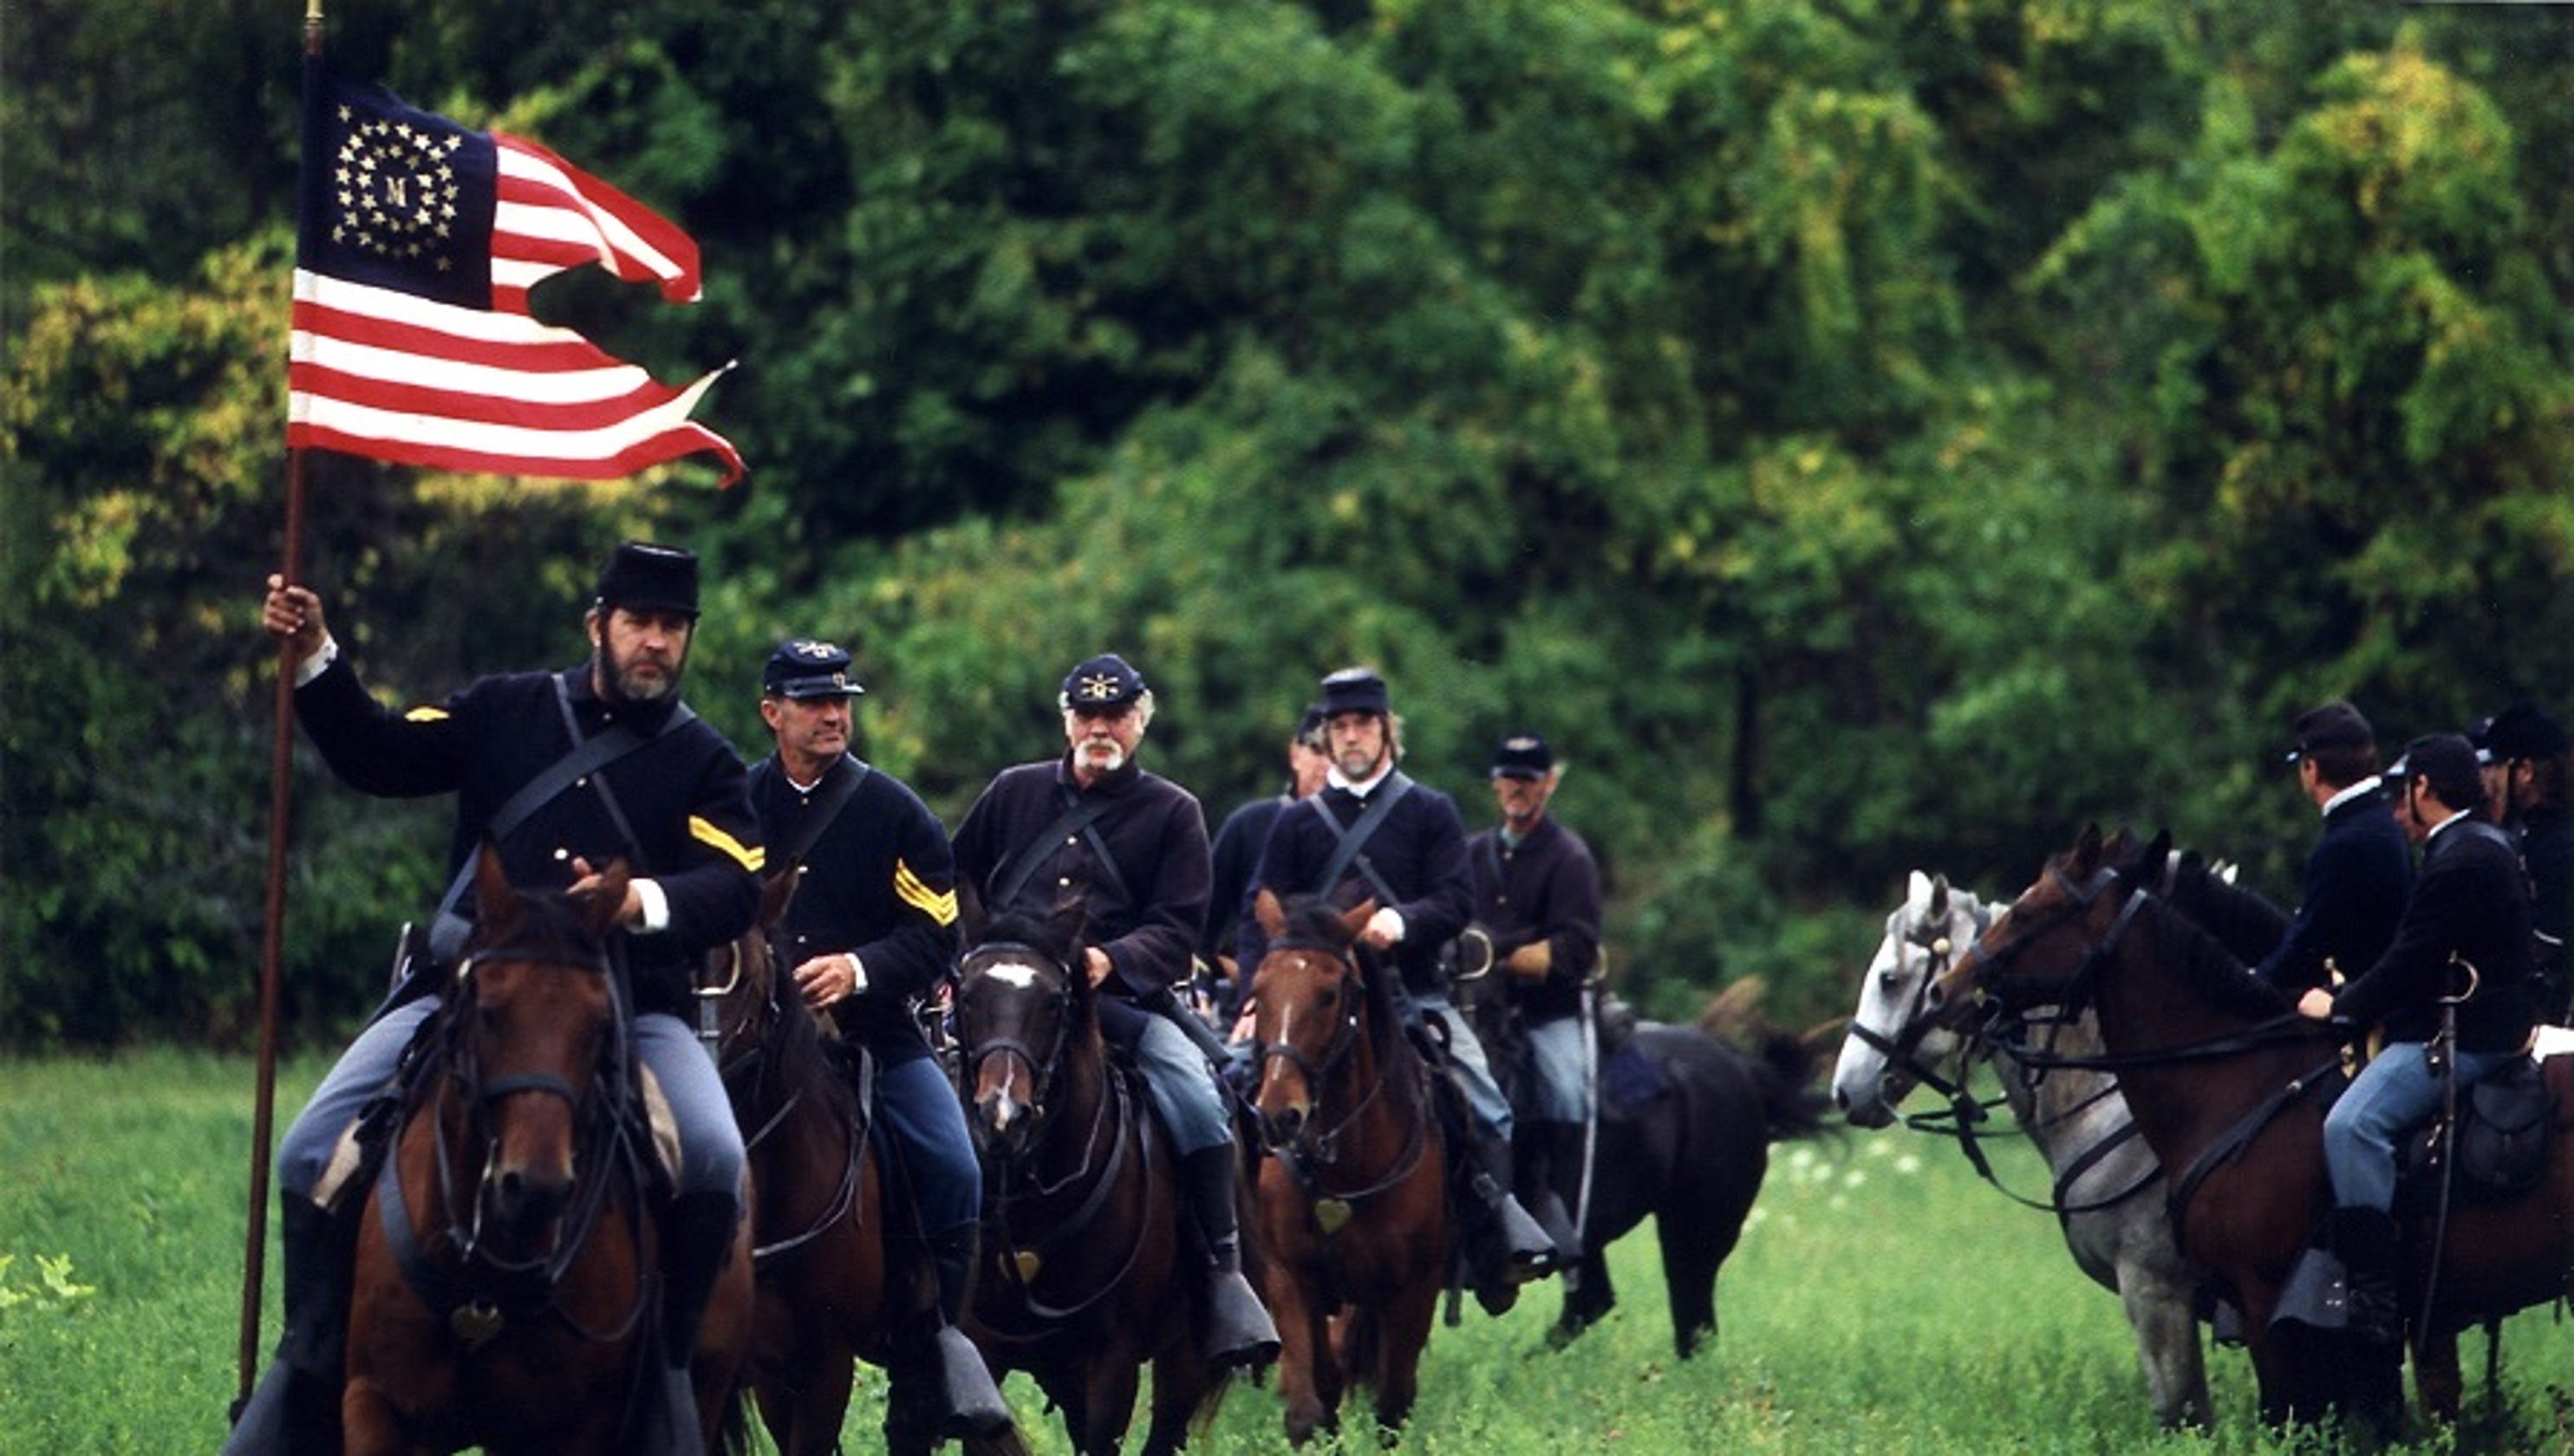 Wade House to hold Wisconsin's largest Civil War reenactment